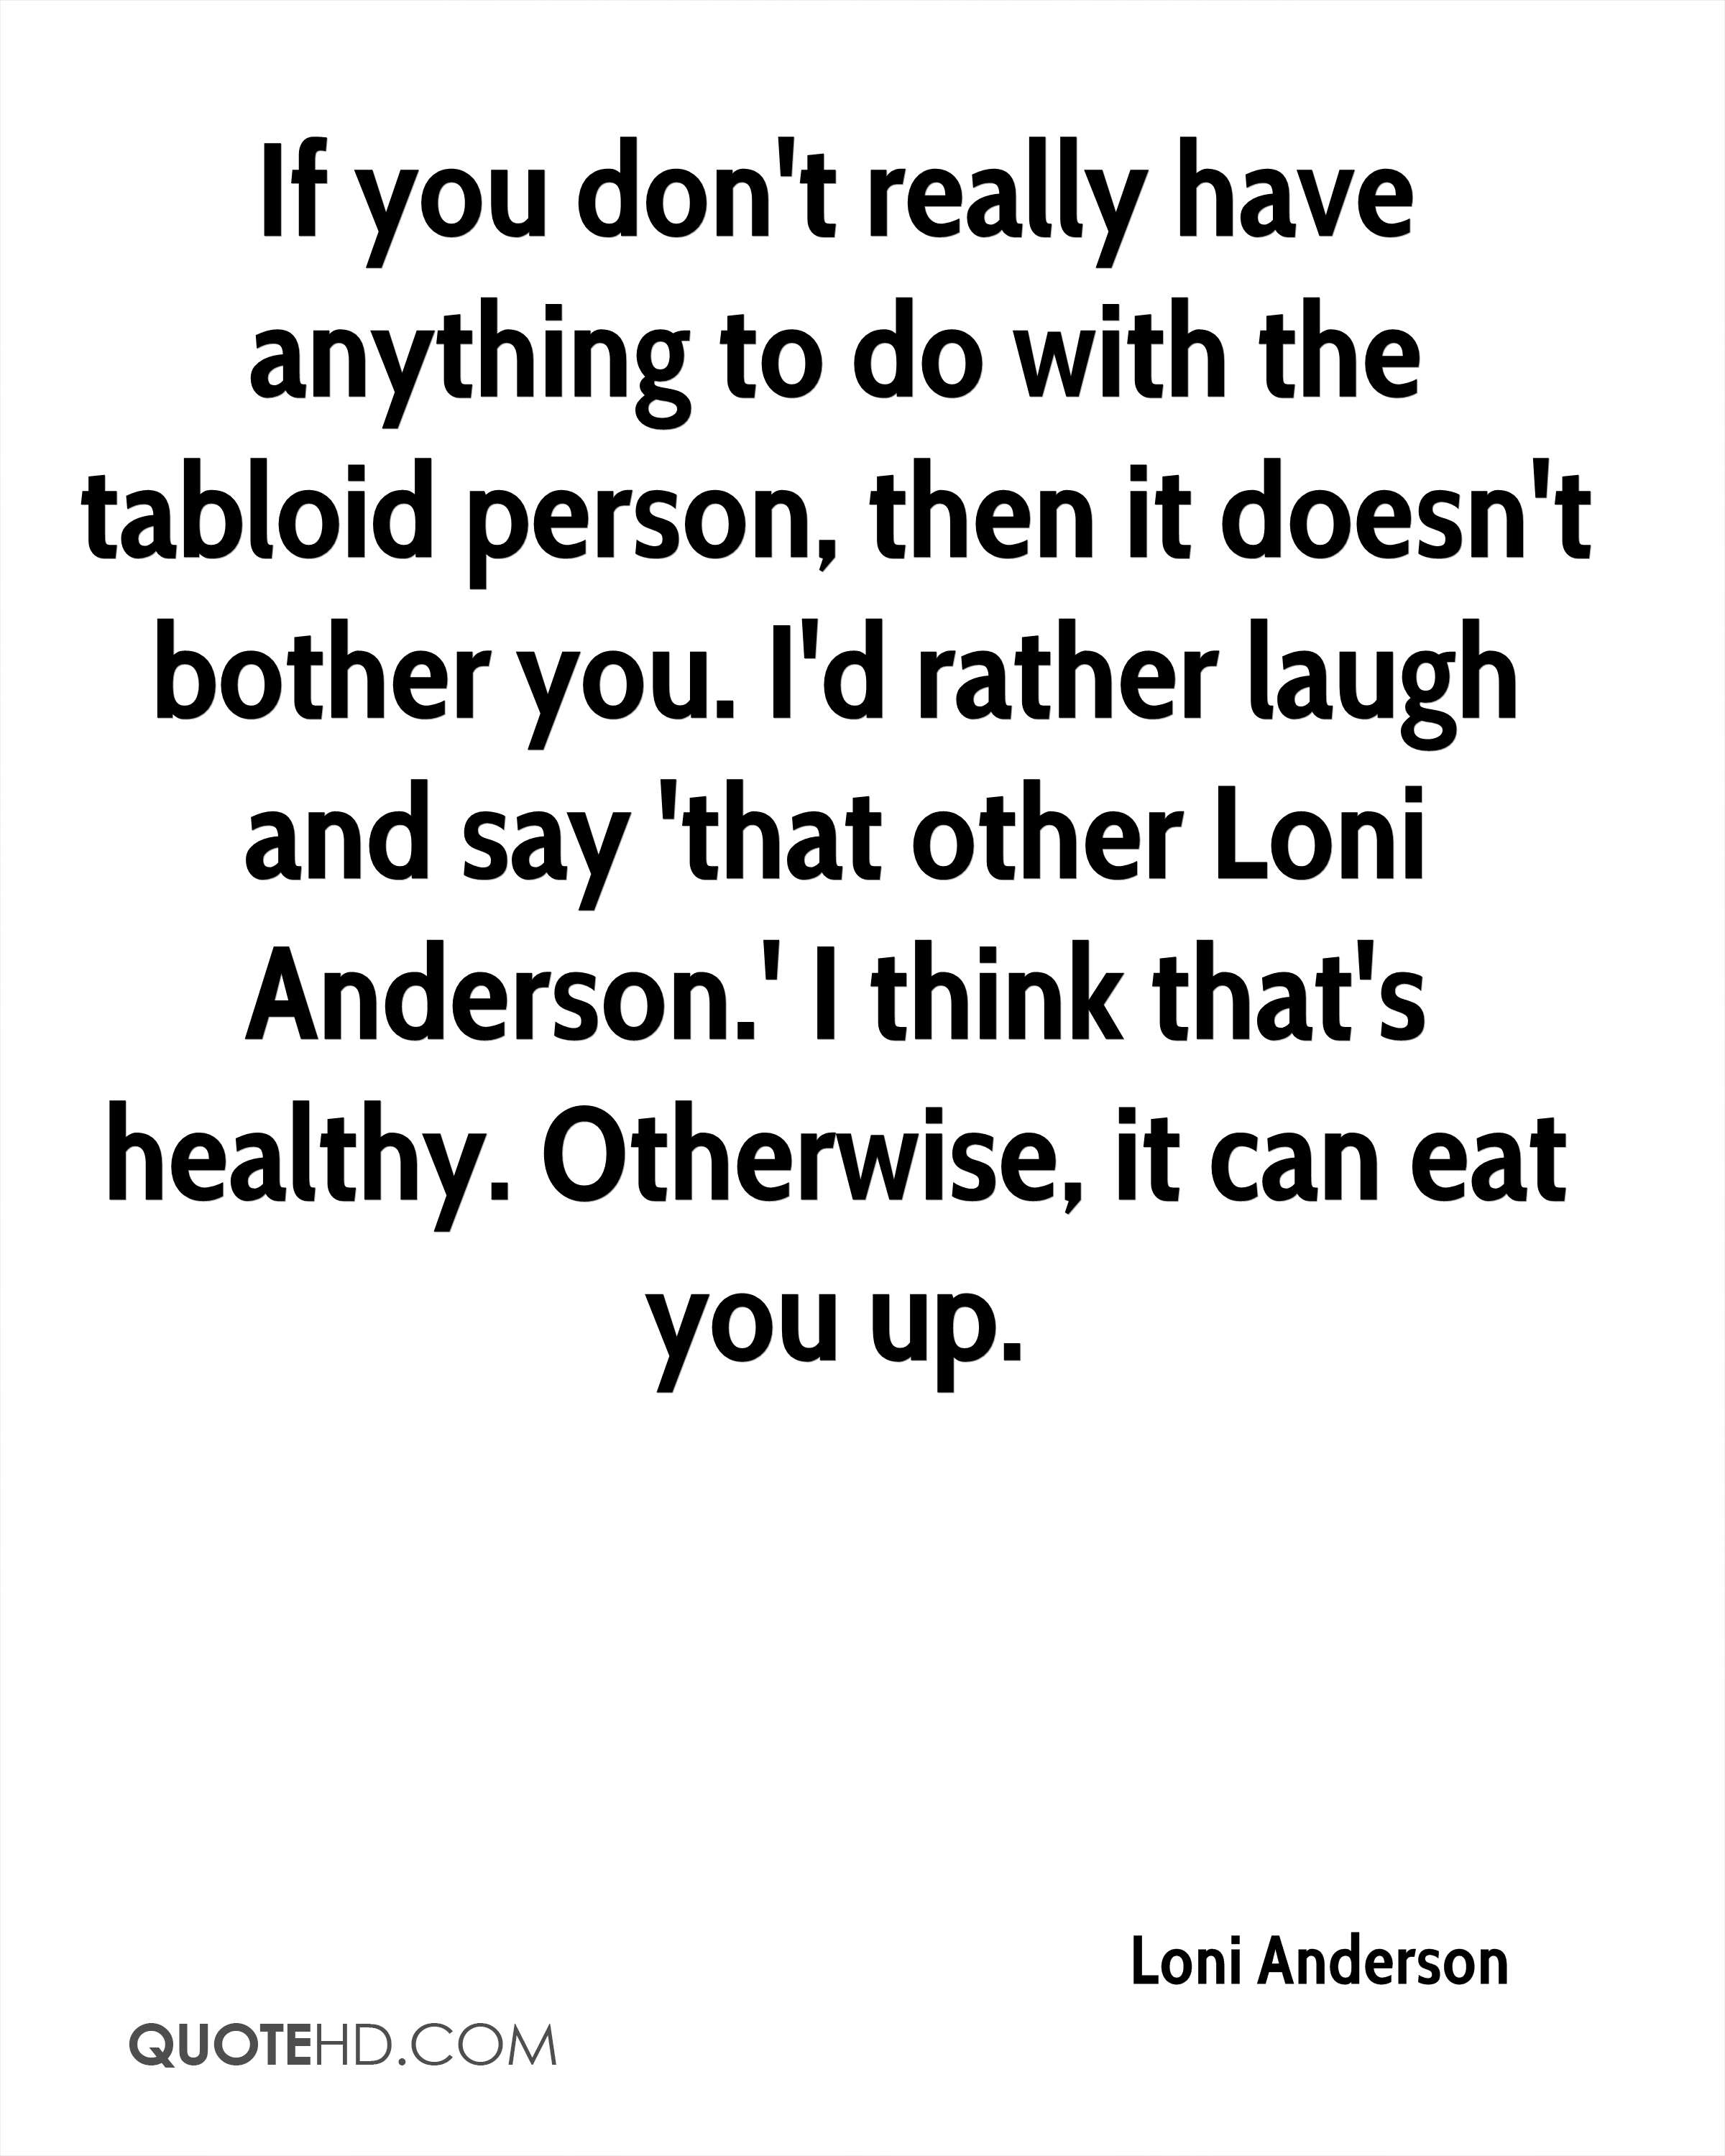 If you don't really have anything to do with the tabloid person, then it doesn't bother you. I'd rather laugh and say 'that other Loni Anderson.' I think that's healthy. Otherwise, it can eat you up.